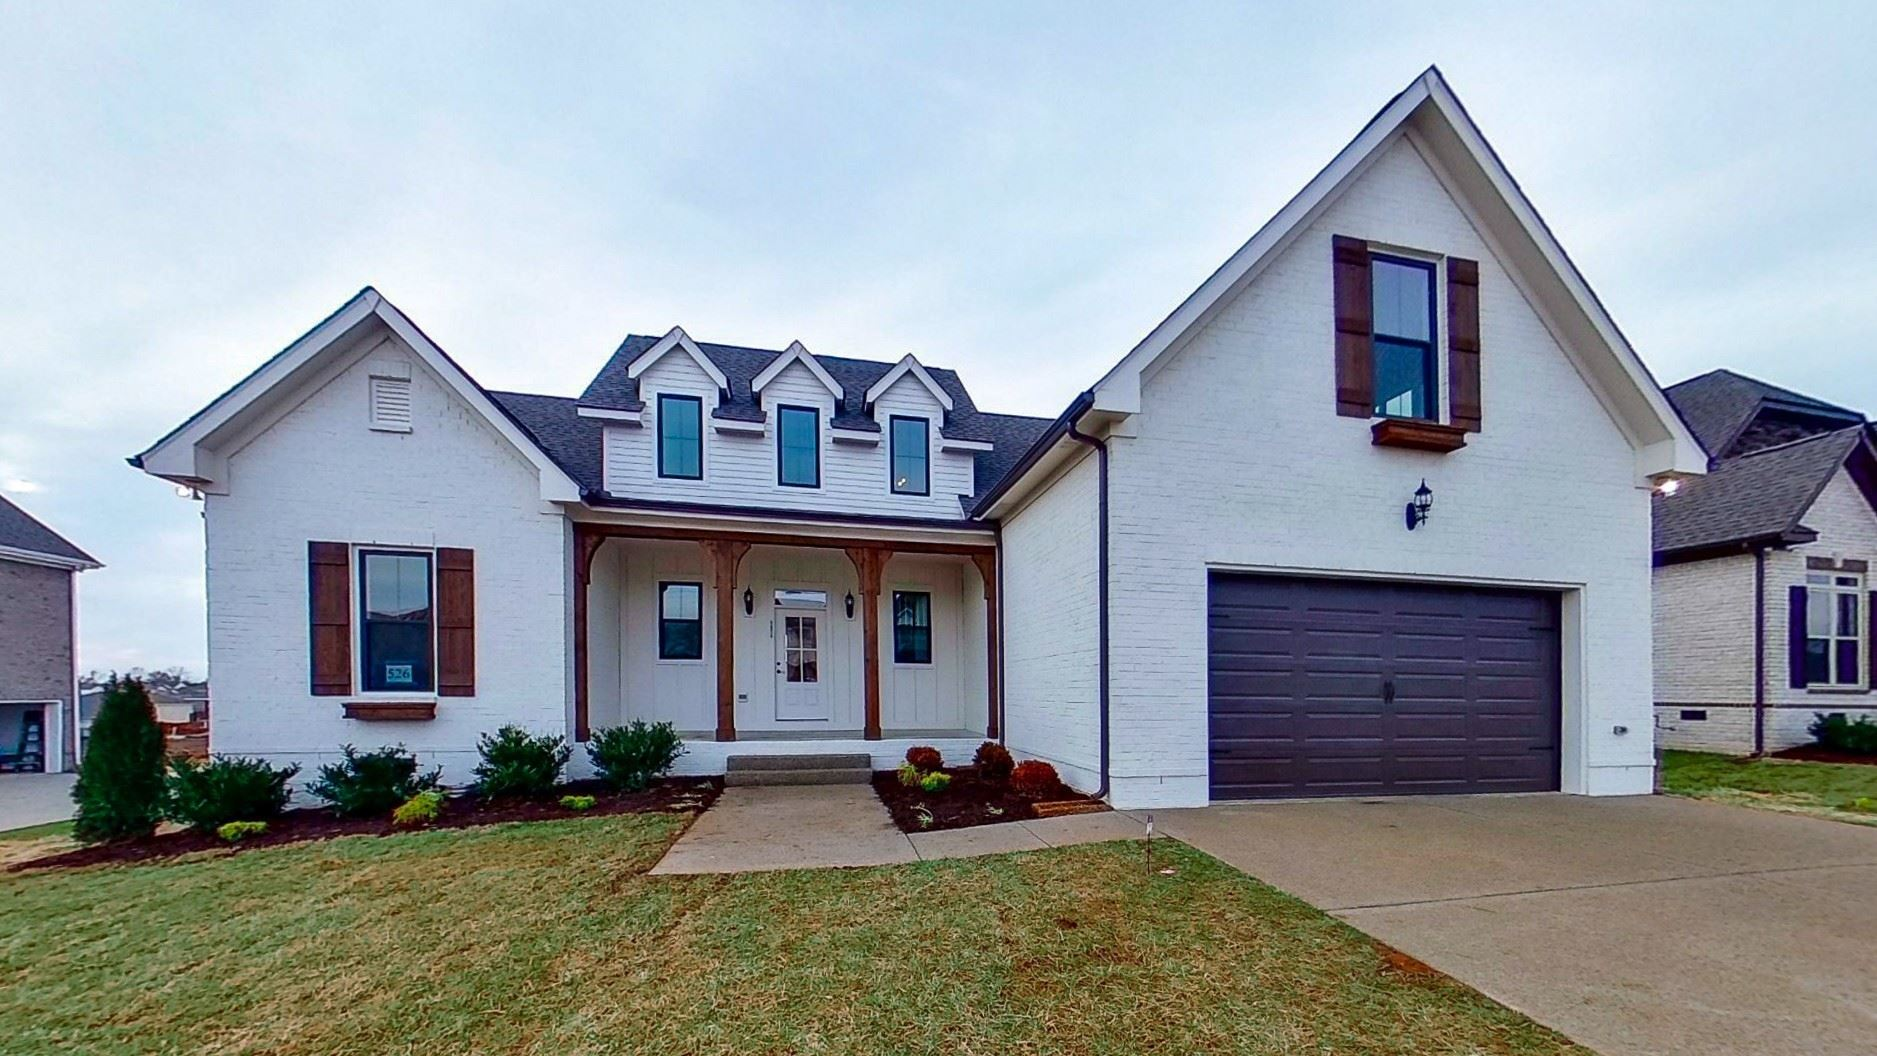 Photo of 8018 Brightwater Way Lot 486, Spring Hill, TN 37174 (MLS # 2249771)